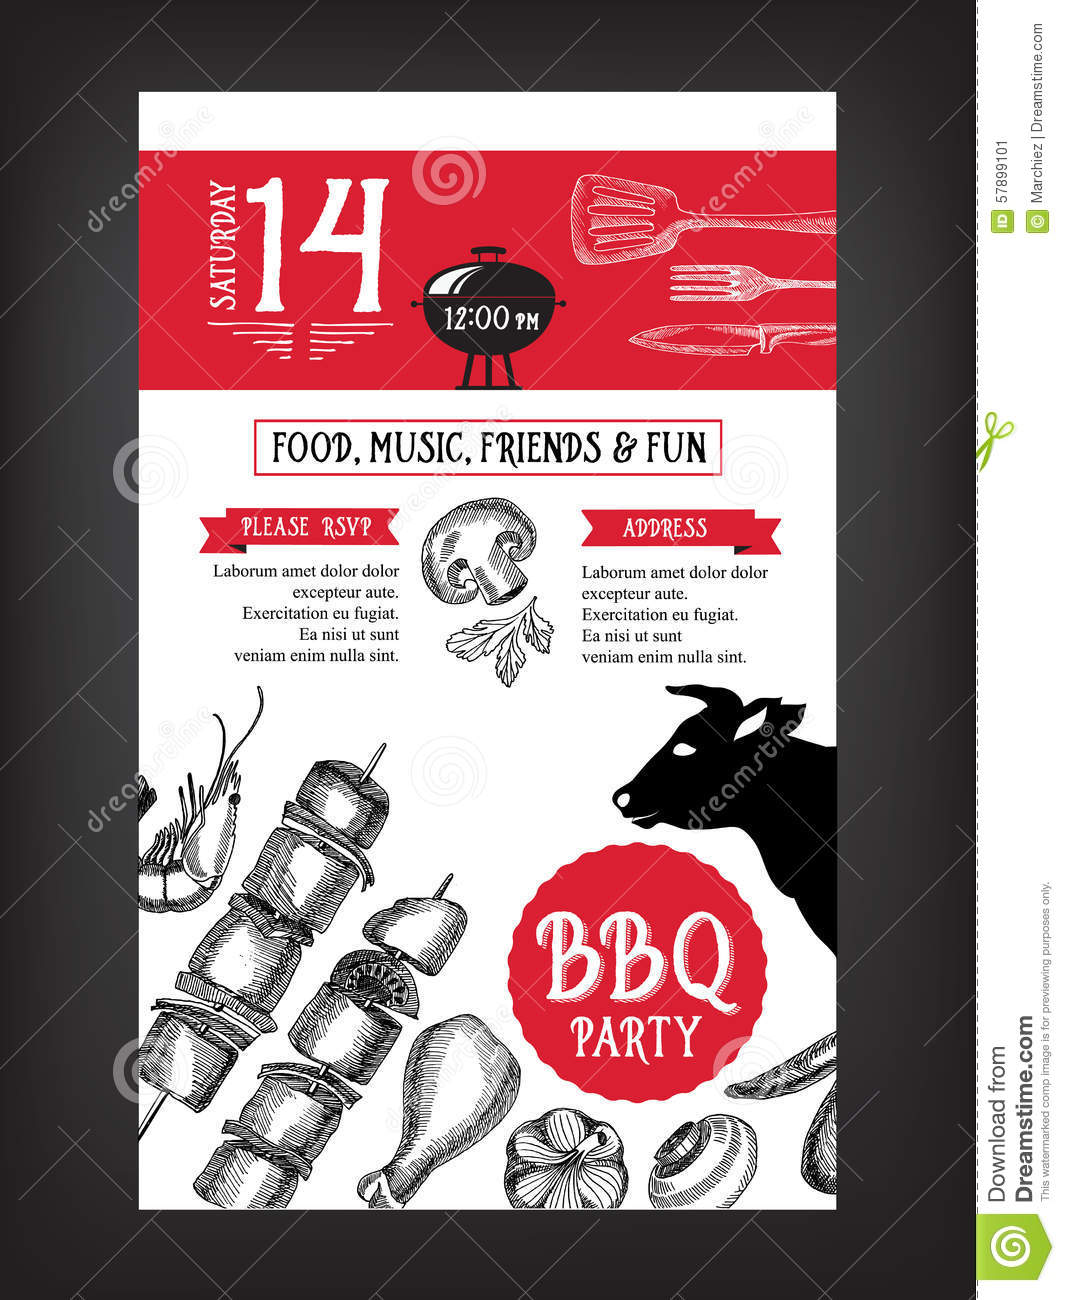 barbecue party invitation bbq template menu design food flyer stock vector image 57899101. Black Bedroom Furniture Sets. Home Design Ideas